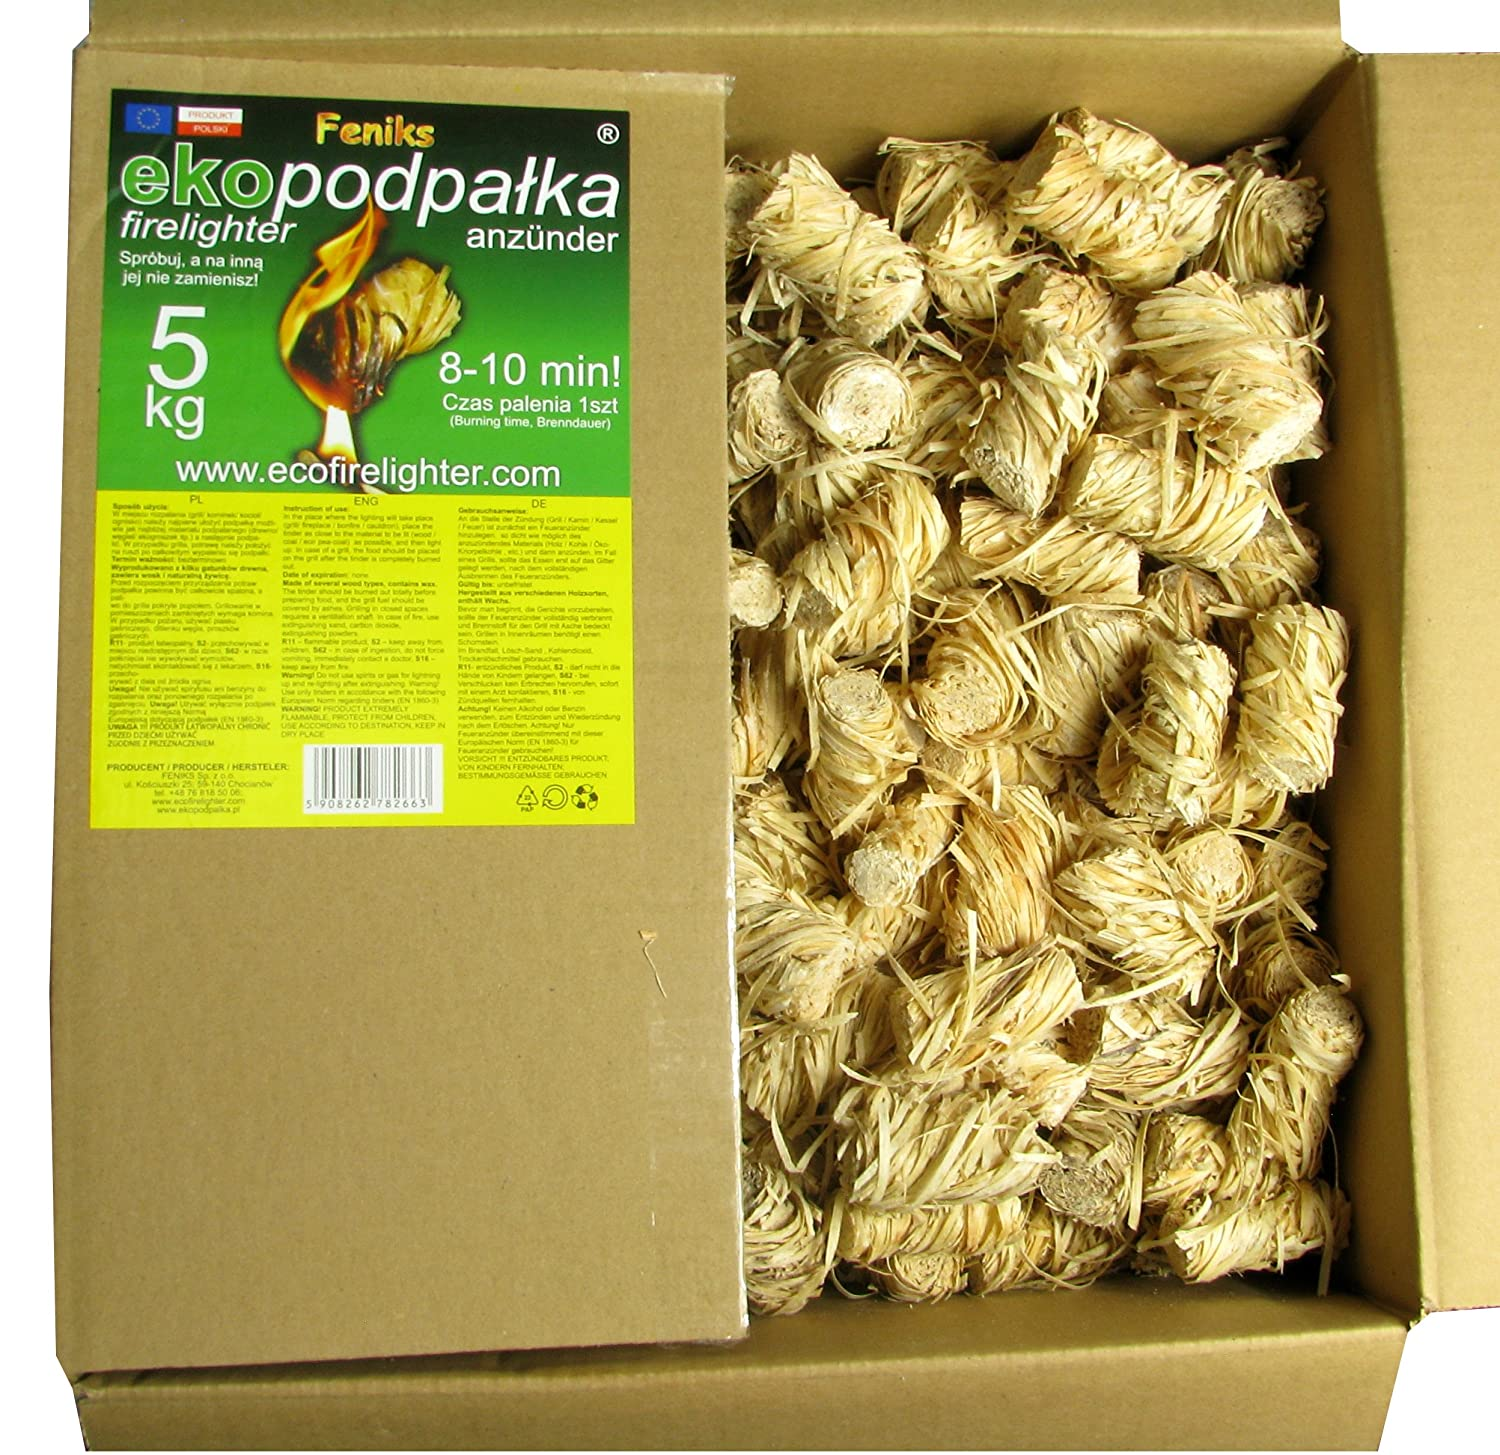 feniks firelighters 500pcs in the box for fireplace stoves